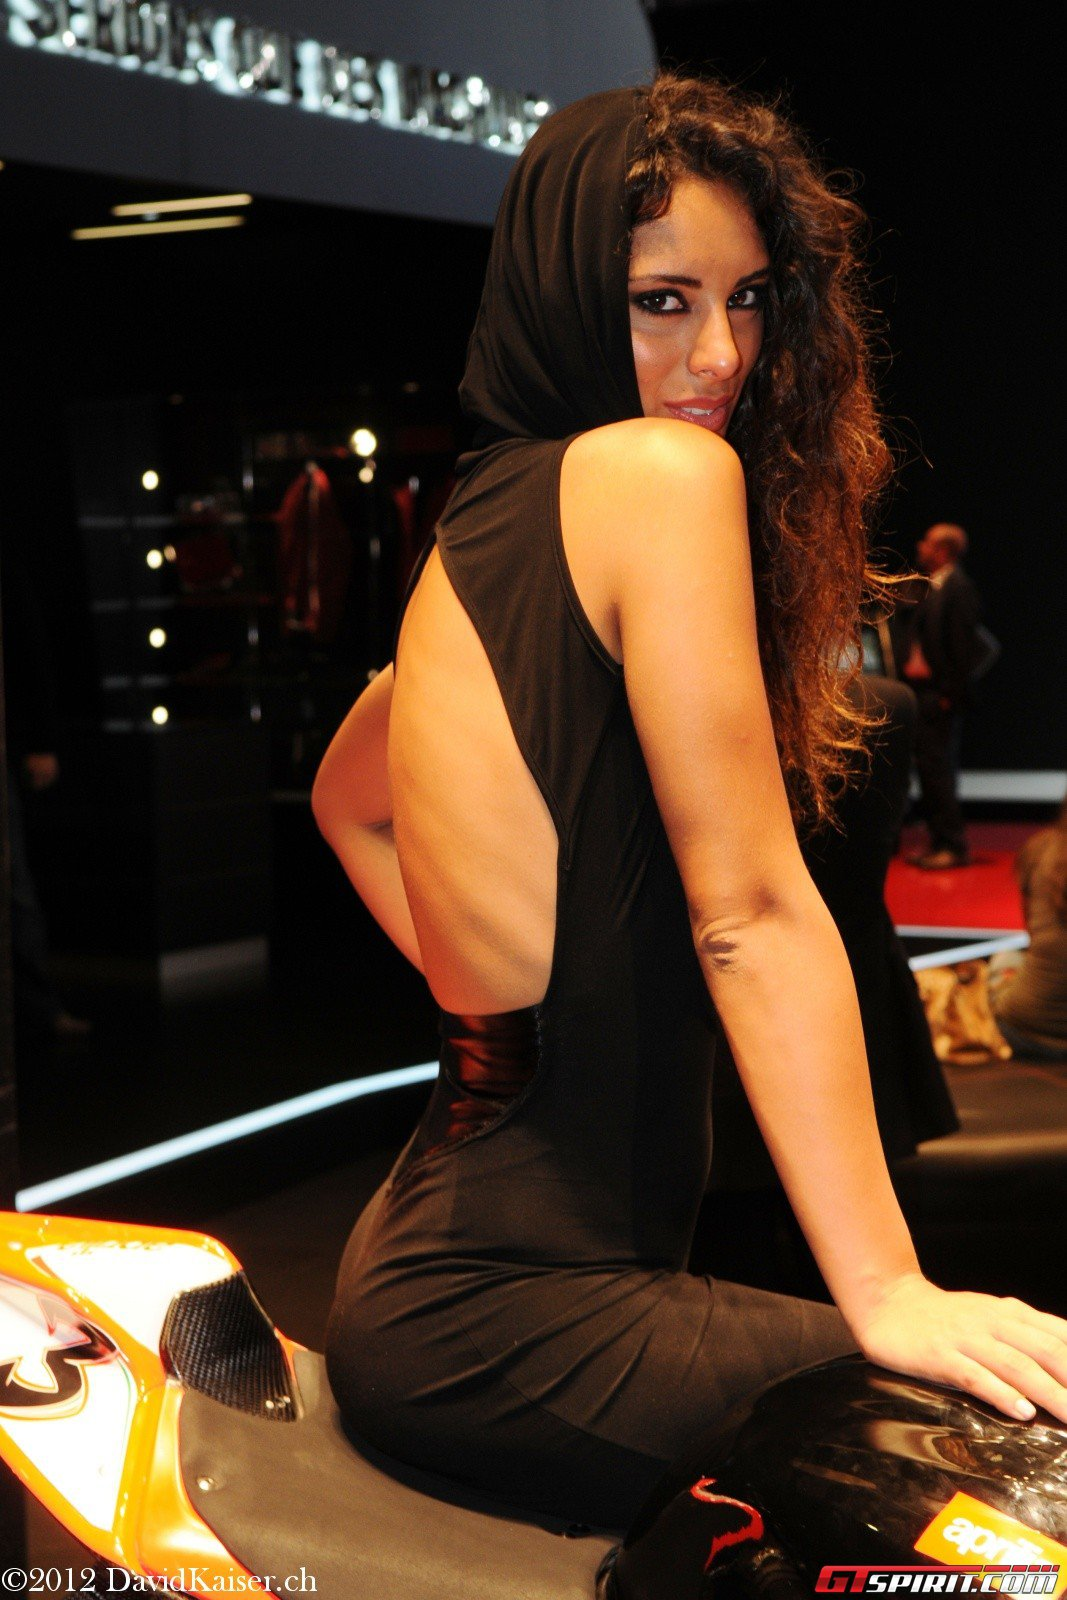 Paris Motor Show 2012 Girls by David Kaiser Photography - Part 1 Photo 21